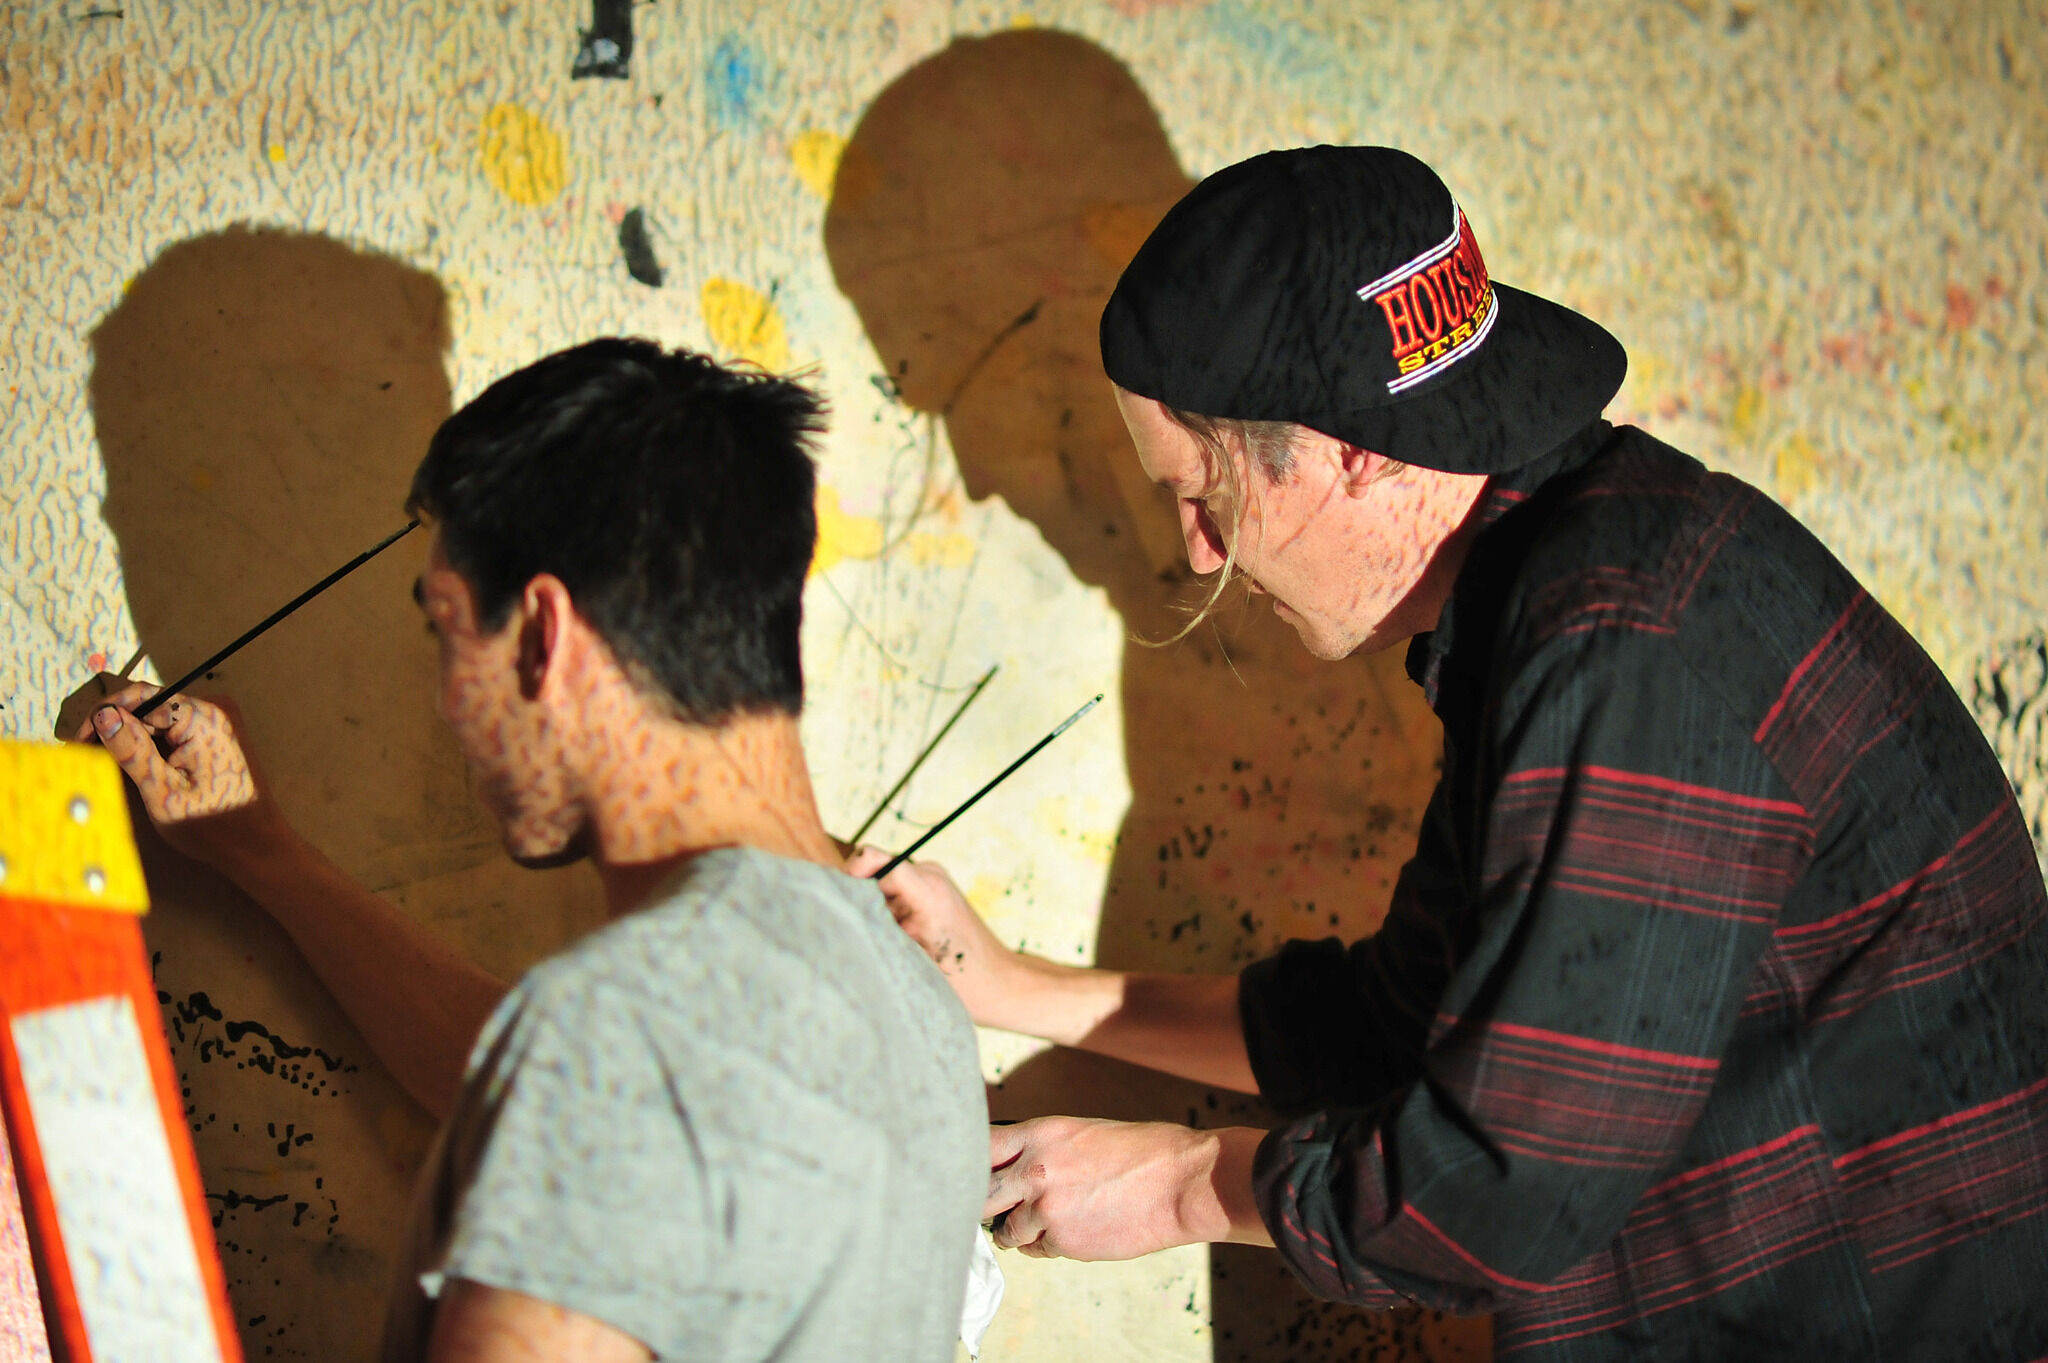 Two students painting on wall.